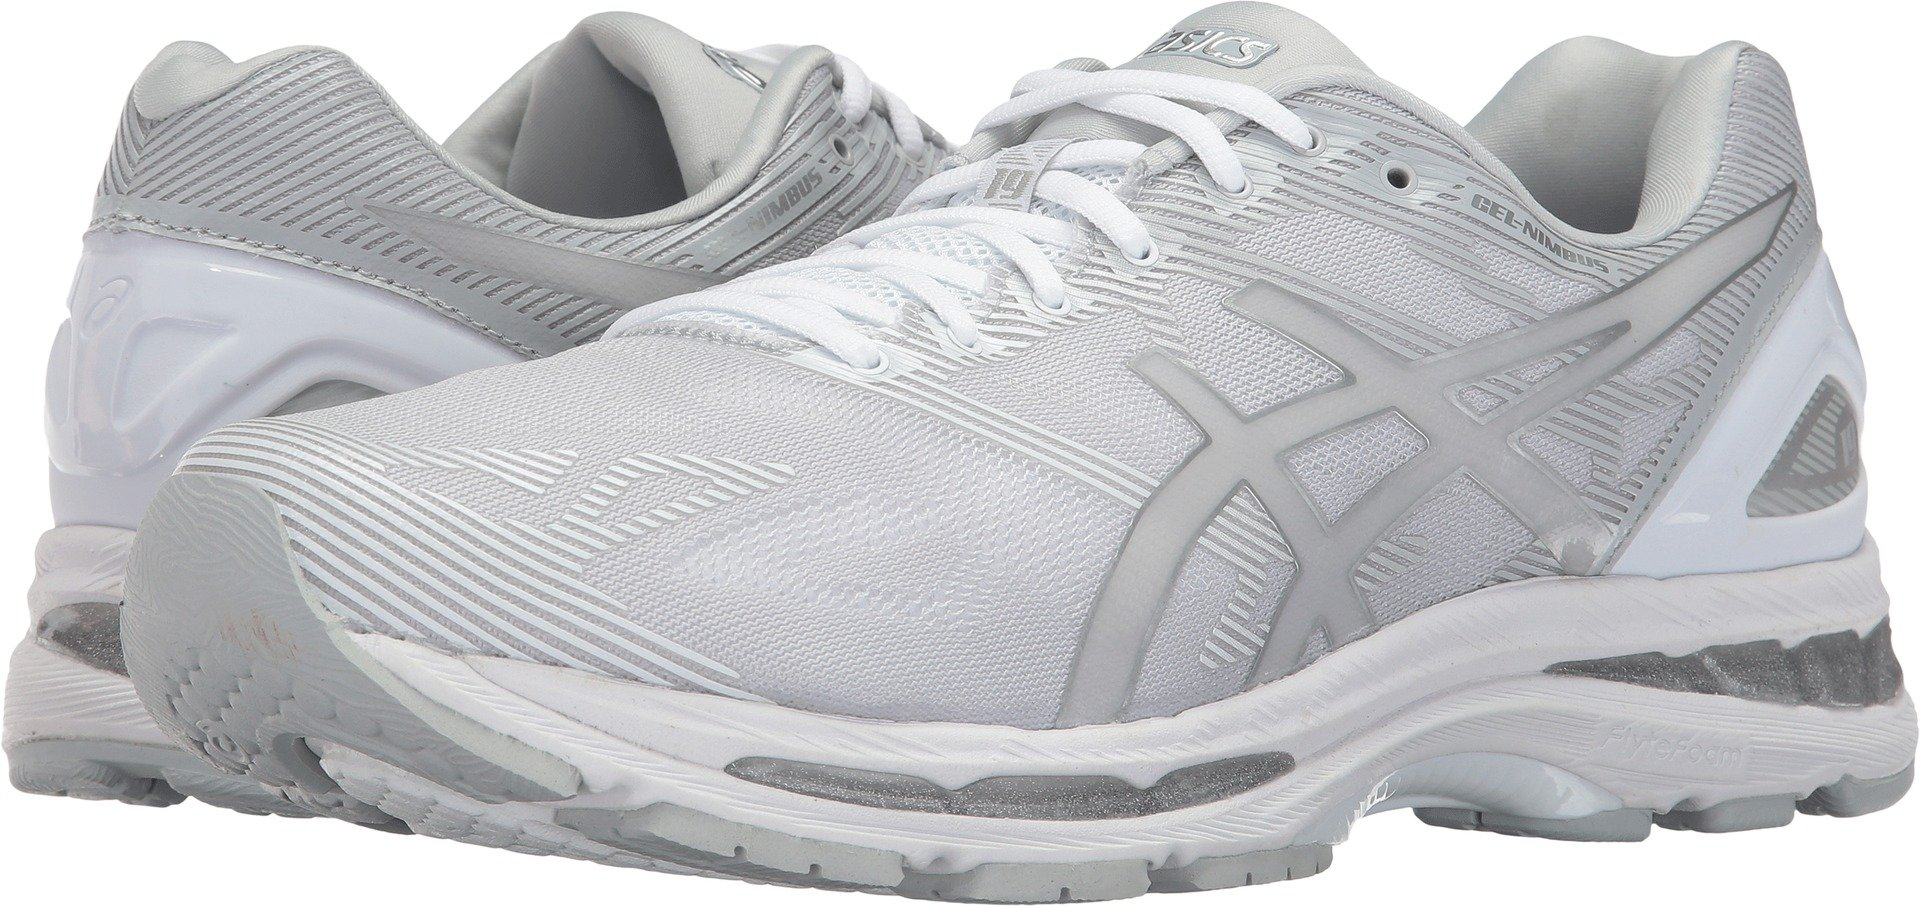 ASICS Men's Gel-Nimbus 19 Running Shoe, Glacier Grey/Silver/White, 10 Medium US by ASICS